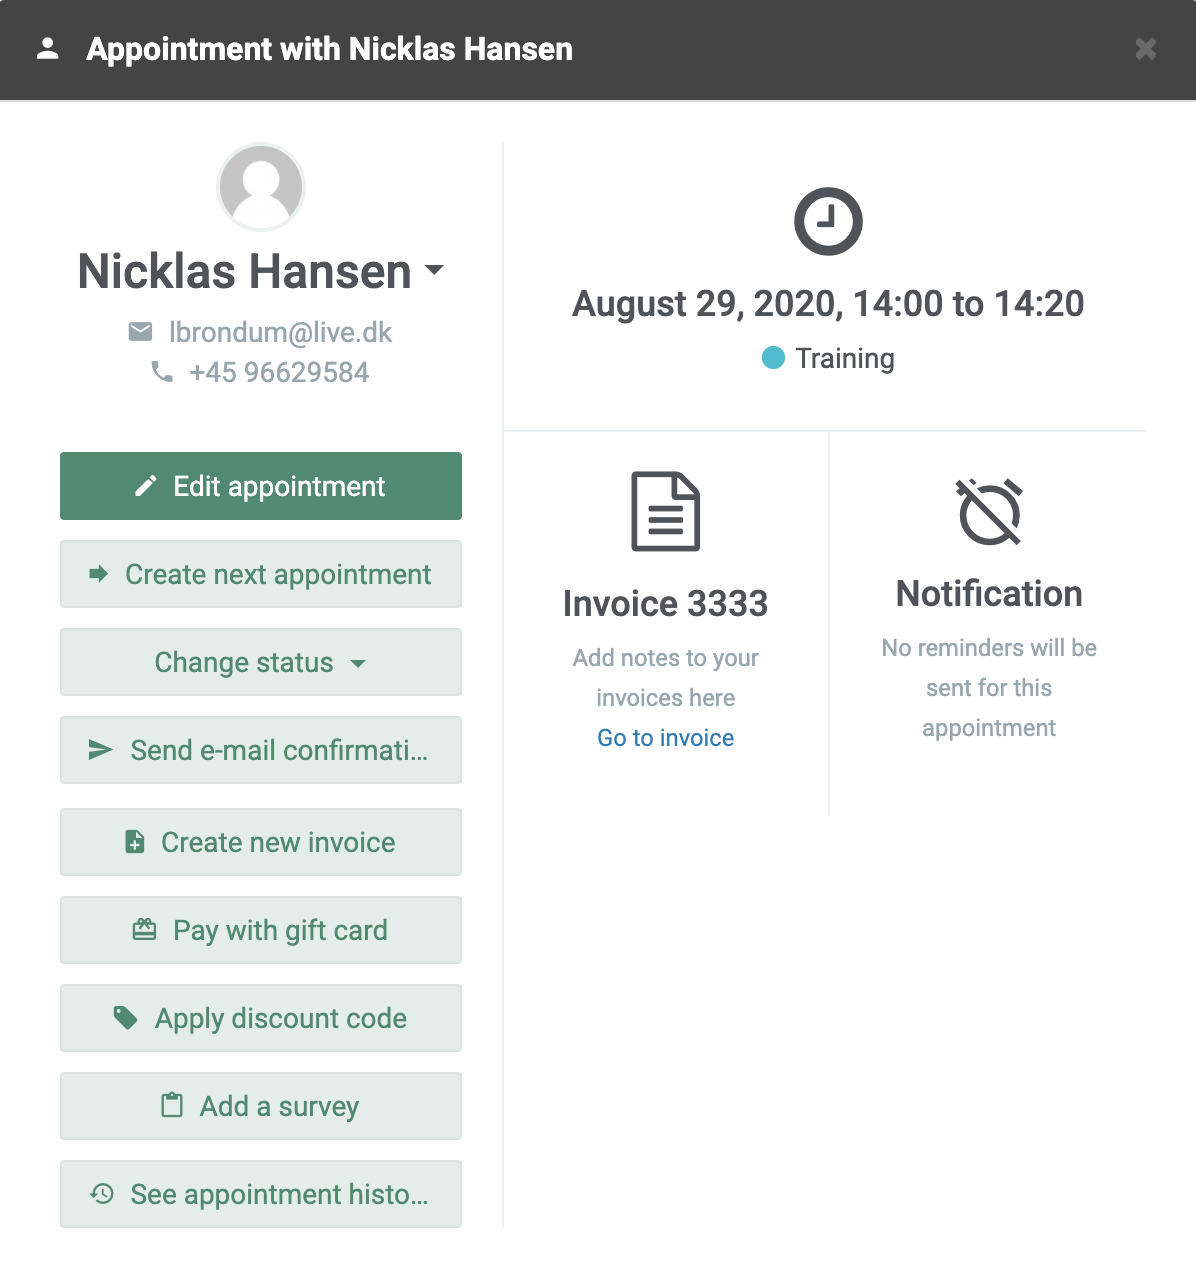 Appointment information in the system